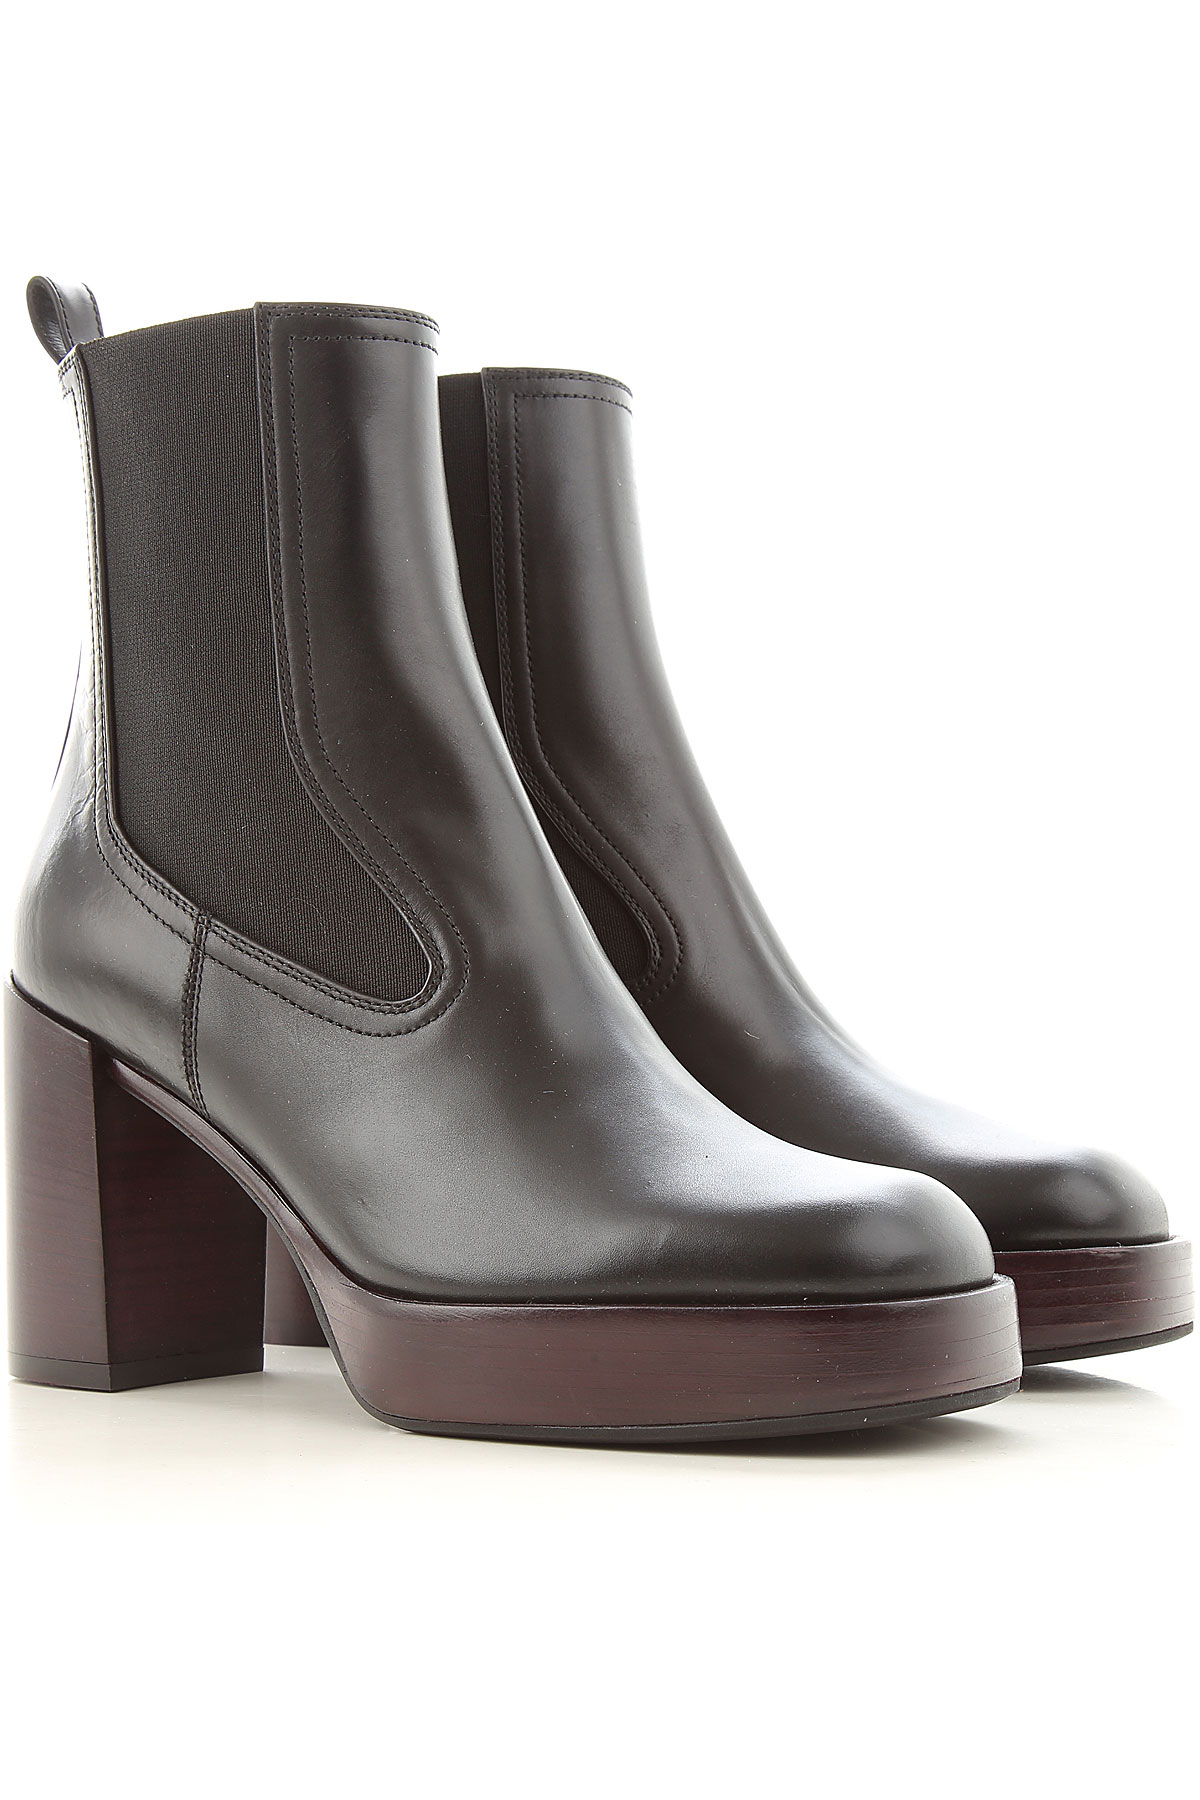 Lella Baldi Boots for Women, Booties On Sale, Black, Leather, 2019, 6 7